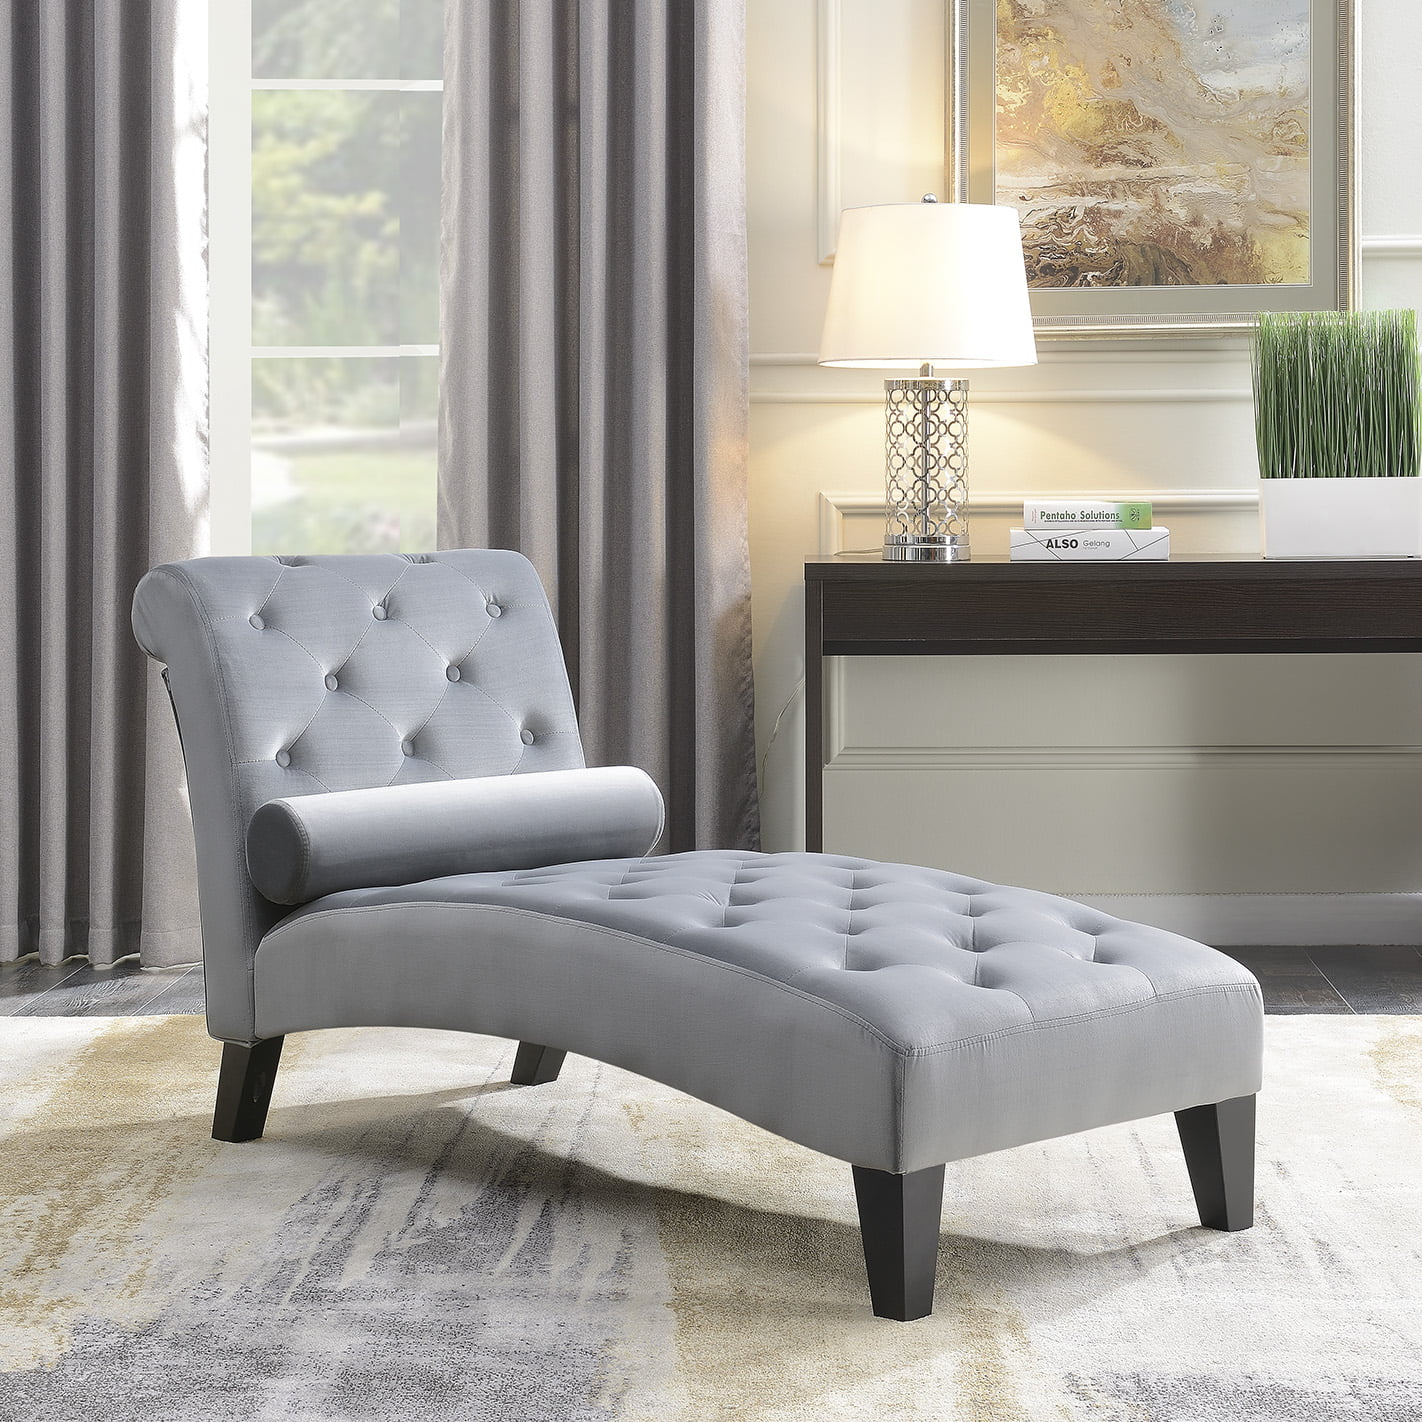 lounge chair indoor swing price in bangladesh chaise lounges walmart com product image belleze living room or home office button tufted leisure rest sofa couch for